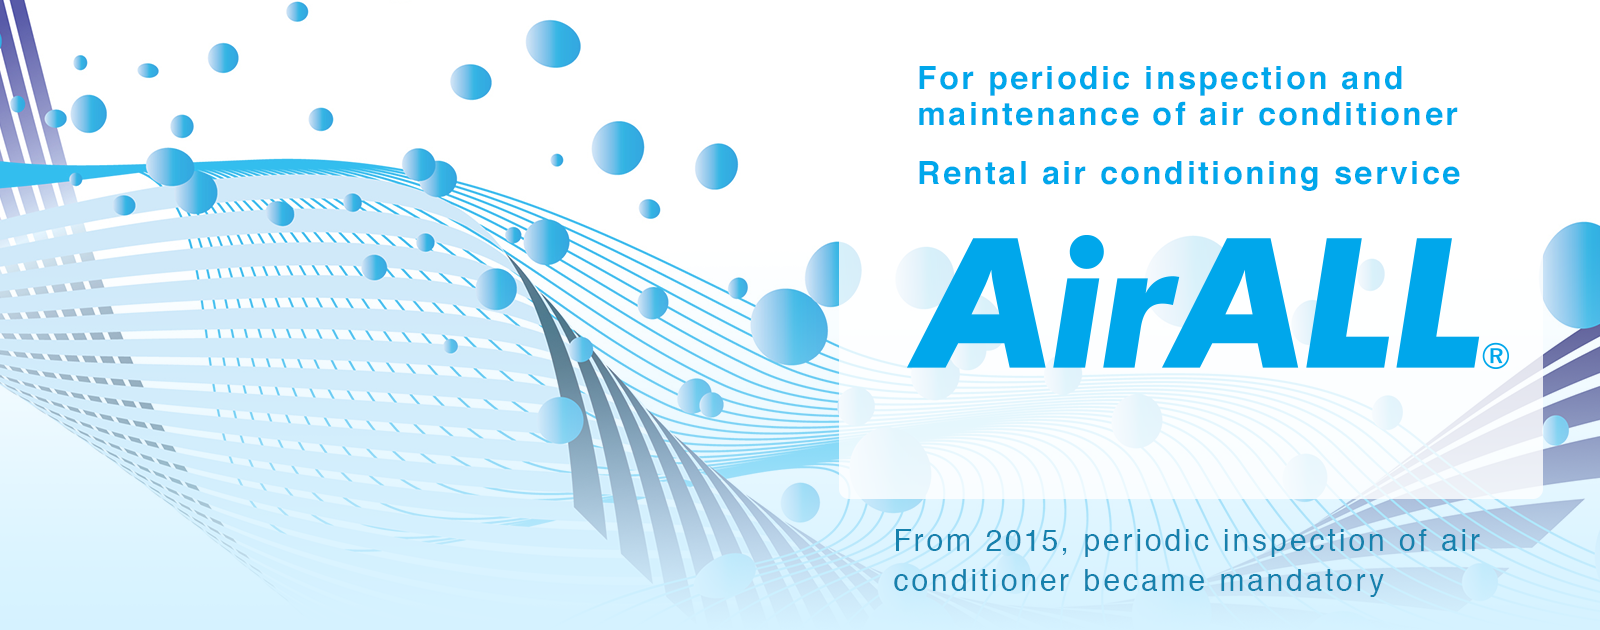 Air All For periodic inspection, maintenance of air conditioner Rental air conditioning service From 2015, periodic inspection of air conditioner became mandatory